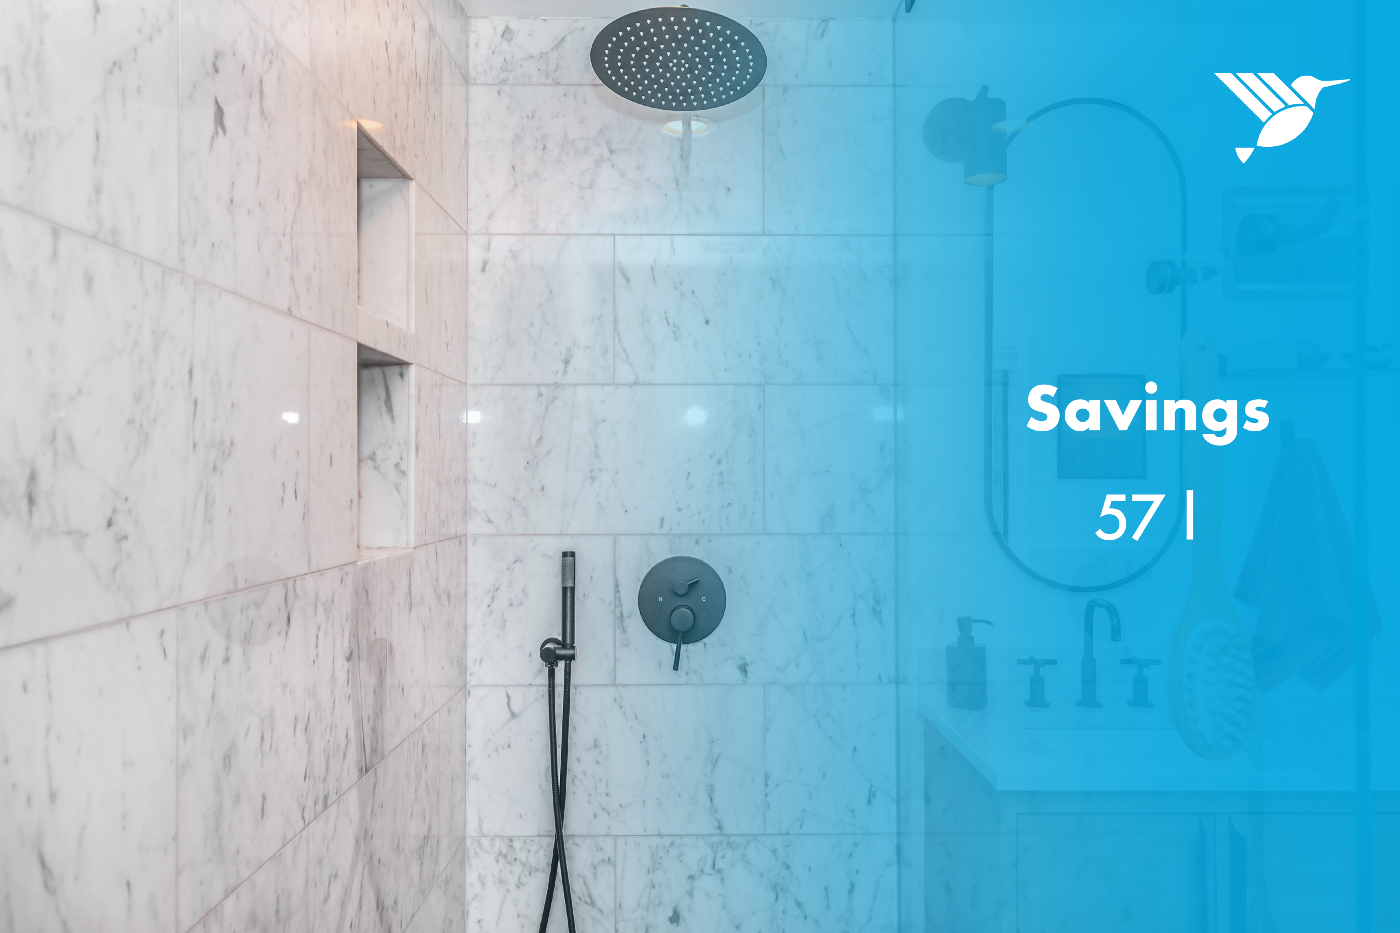 """A shower with a text next to it saying: """"Savings 57l"""""""